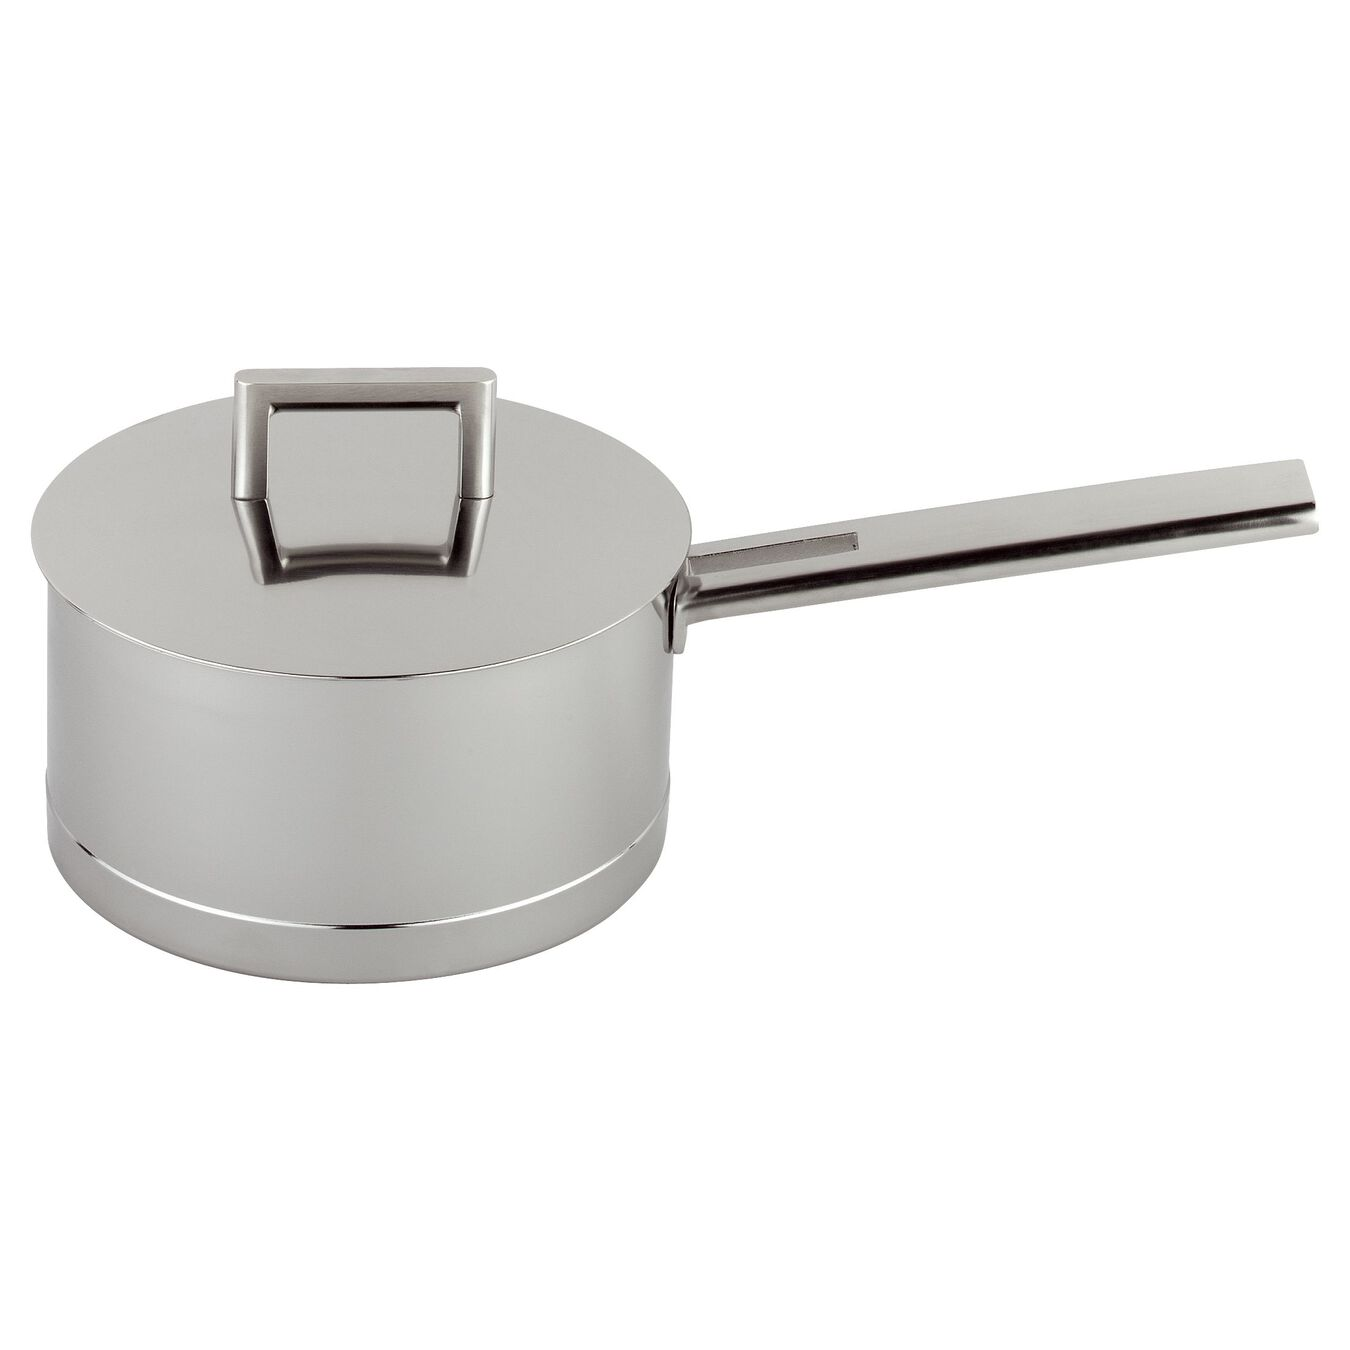 1.1-qt Stainless Steel Saucepan,,large 1